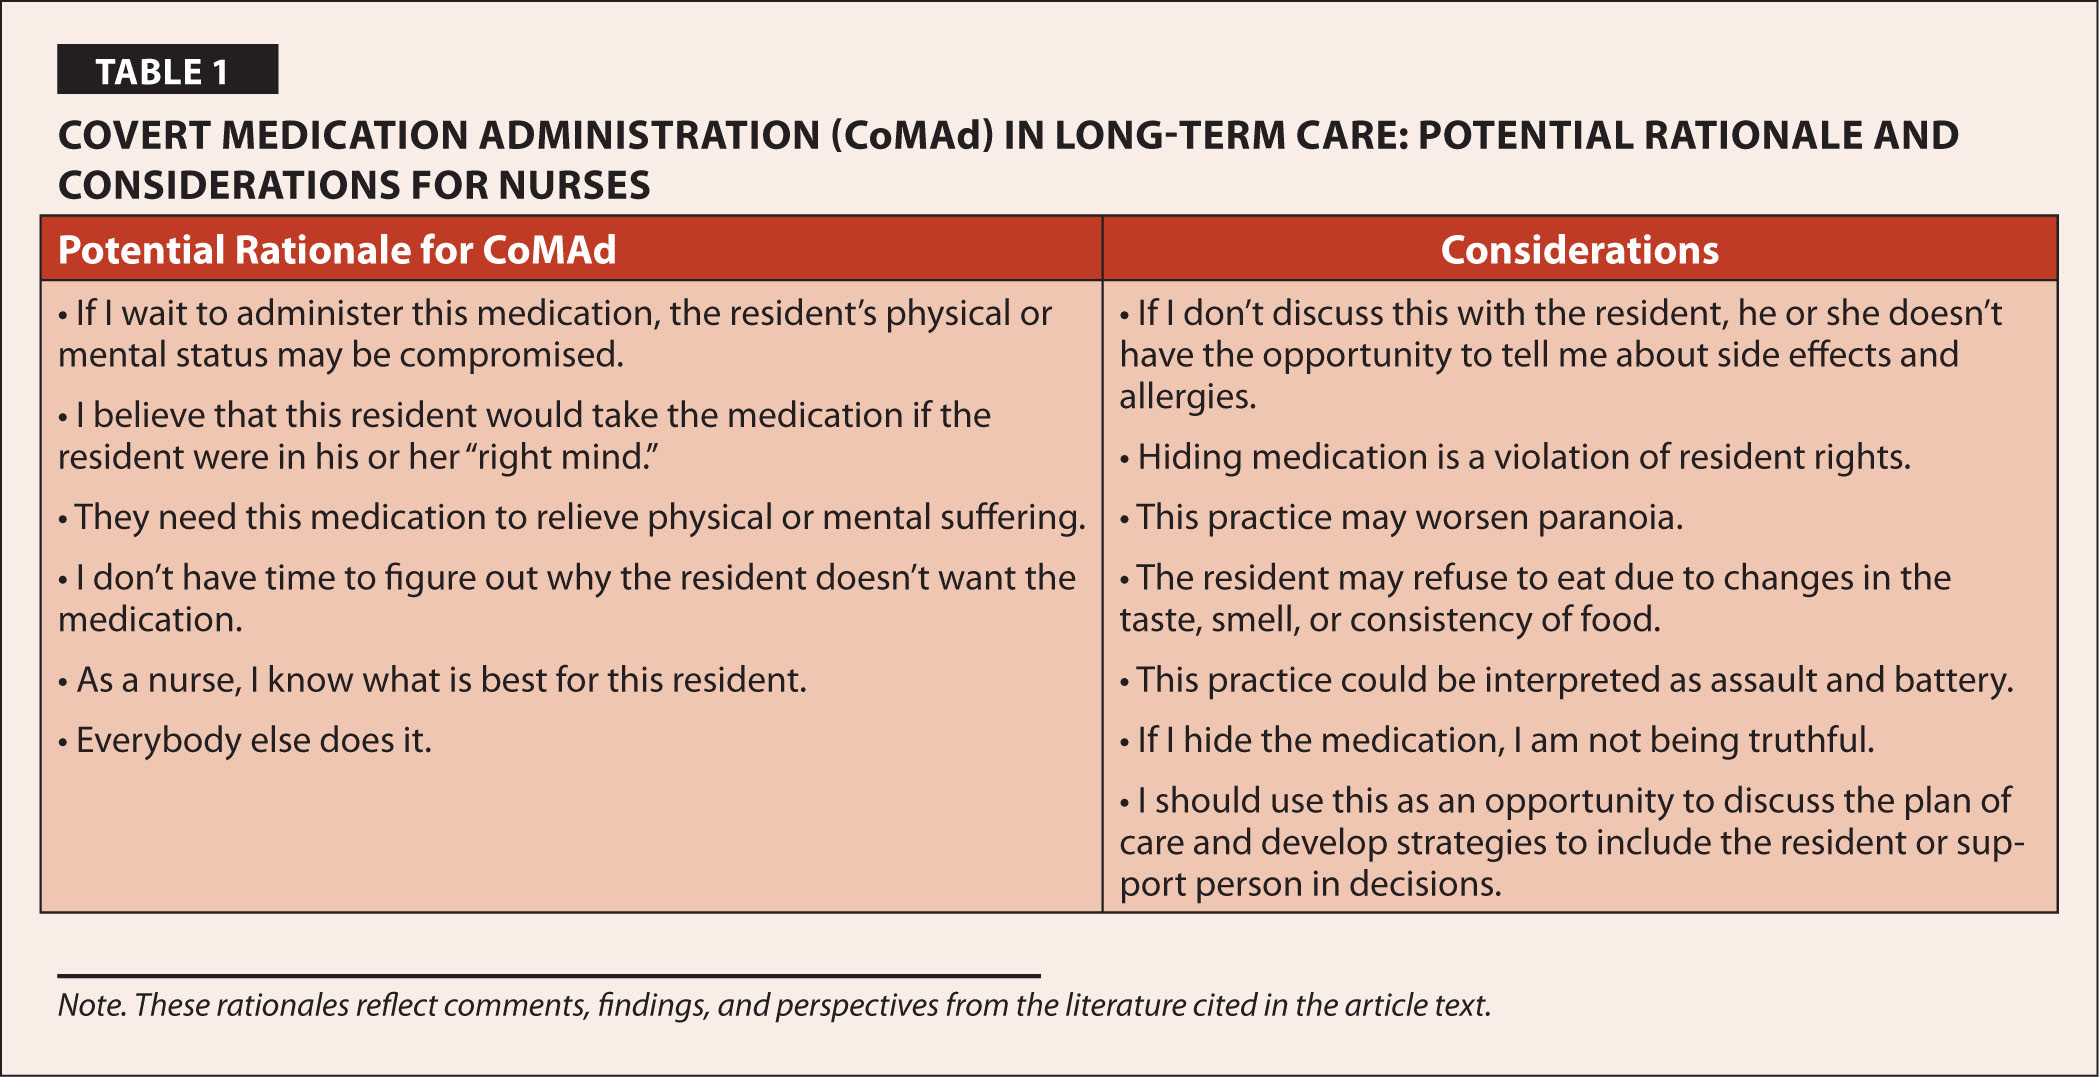 Covert Medication Administration (CoMAd) in Long-Term Care: Potential Rationale and Considerations for Nurses